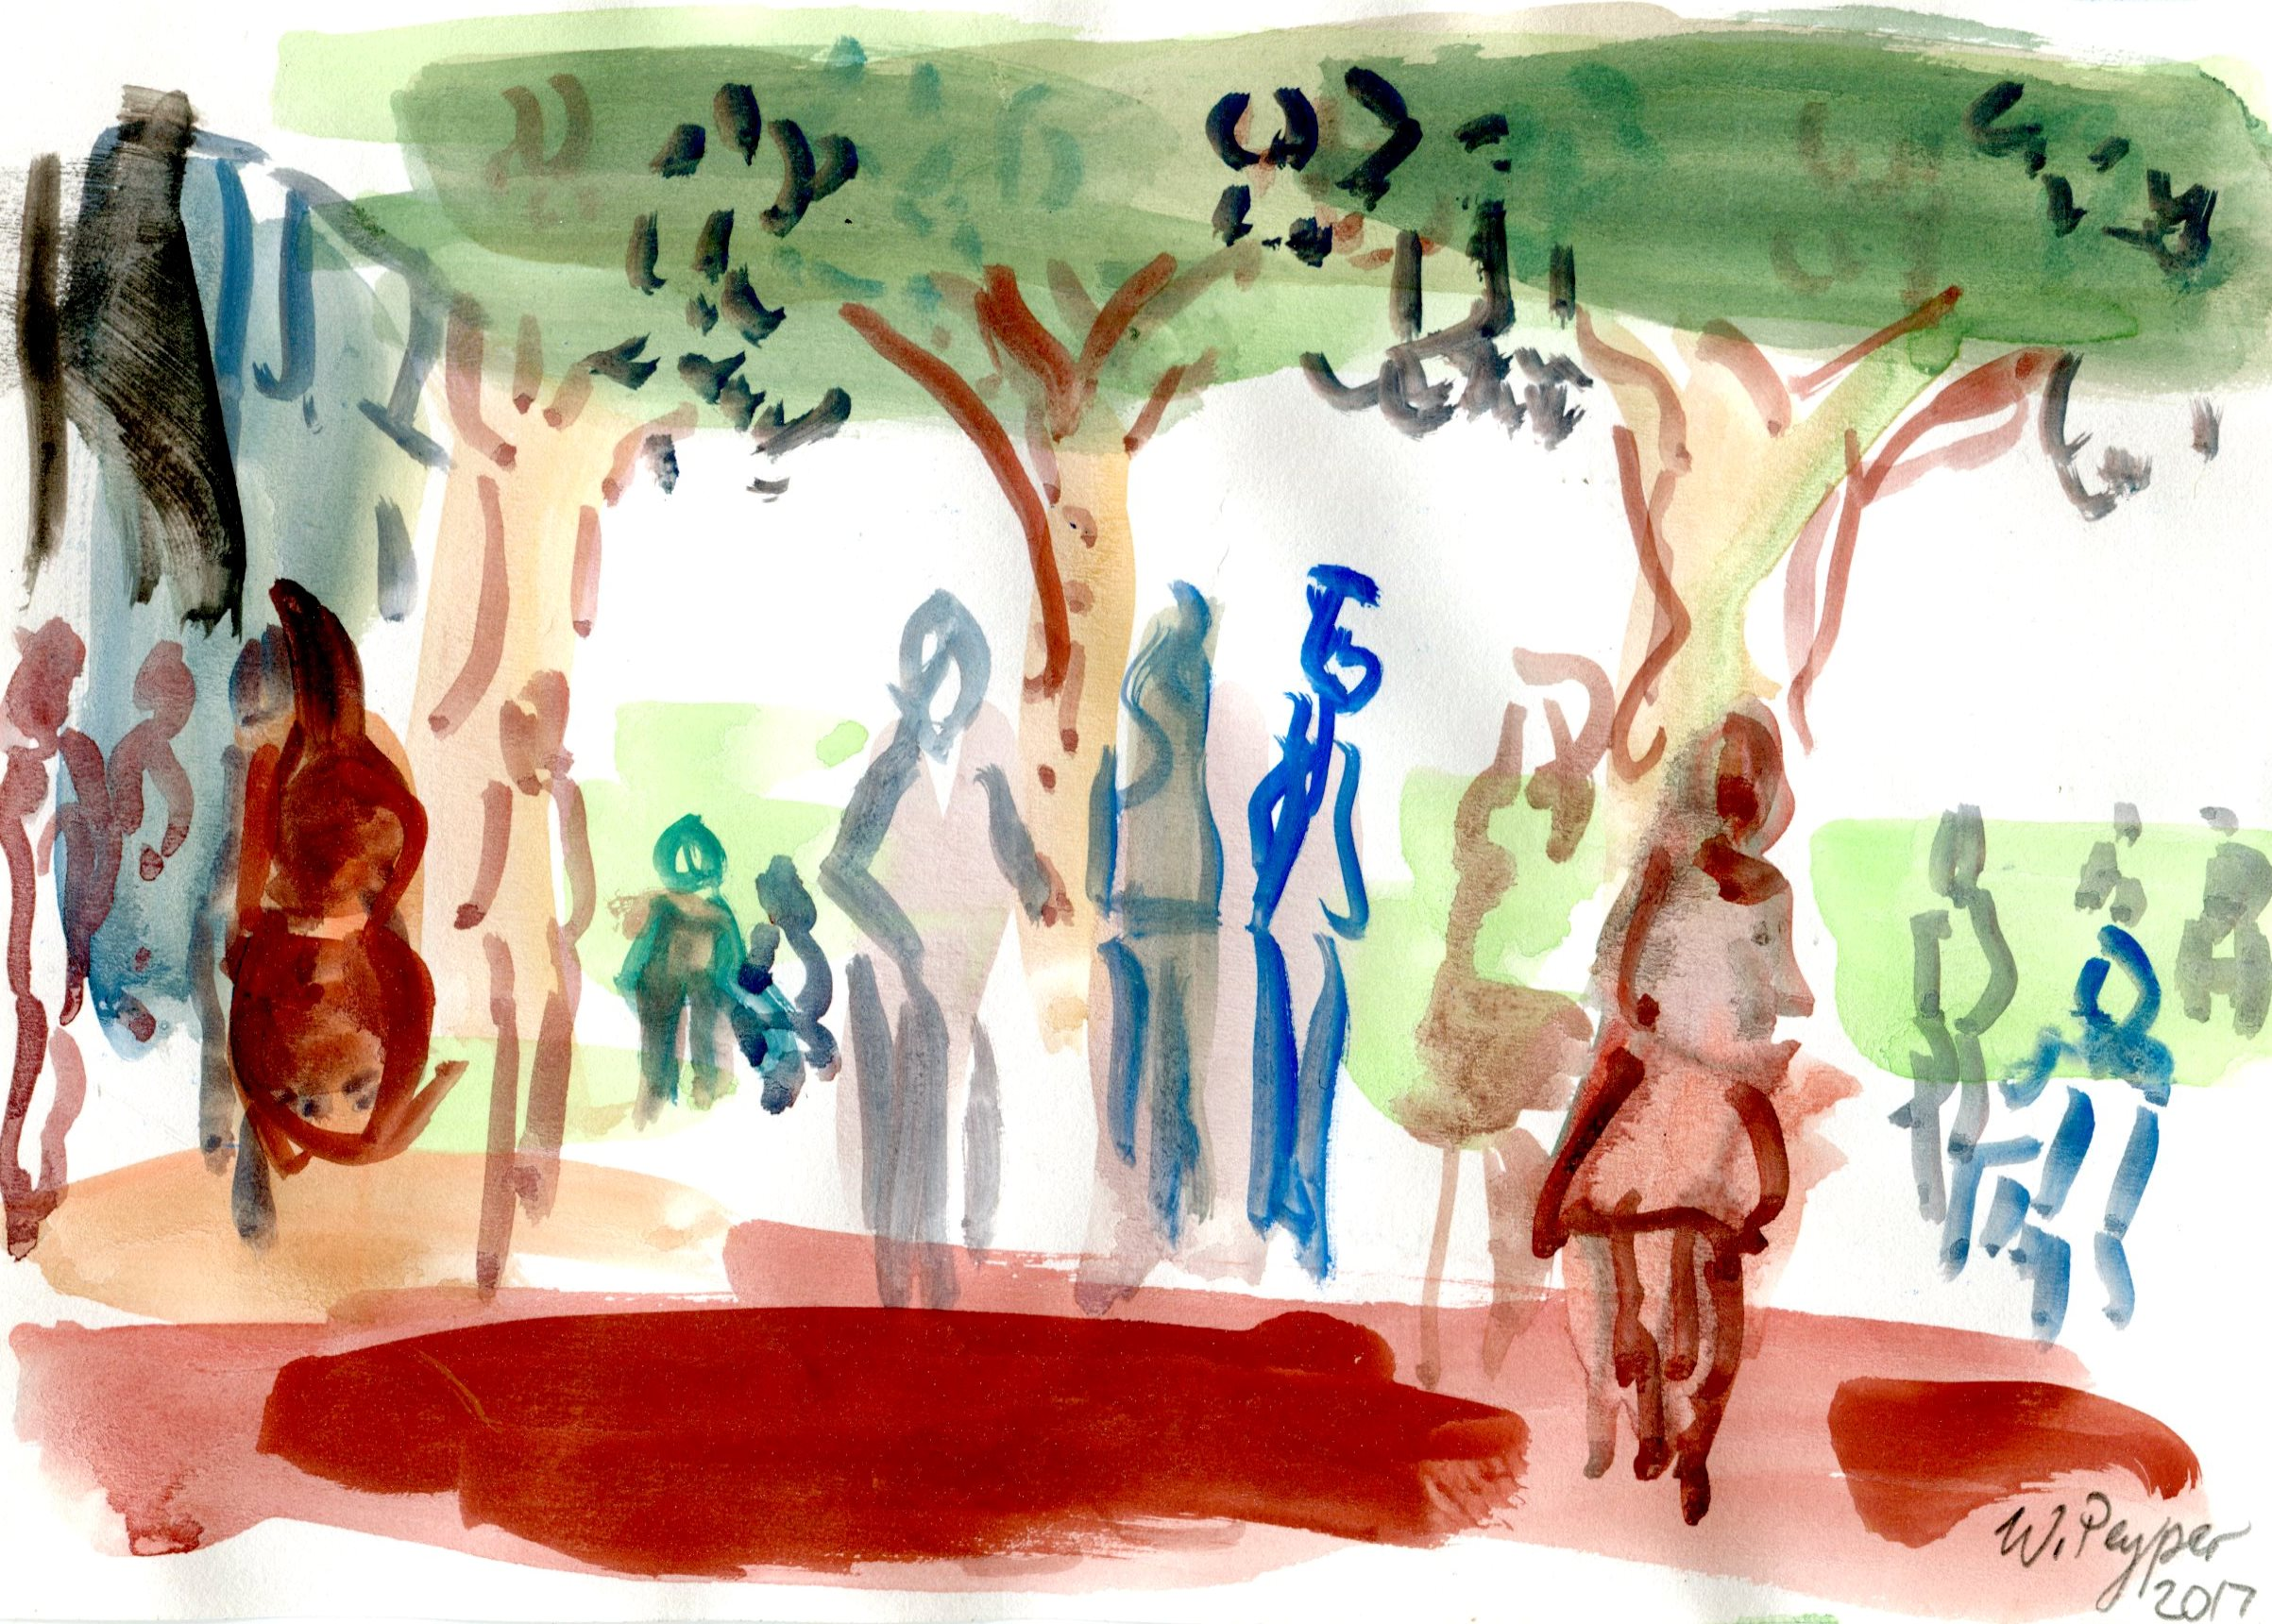 7C WAYNE PEYPER, CONCERT IN THE PARK, WATERCOLOUR ON PAPER